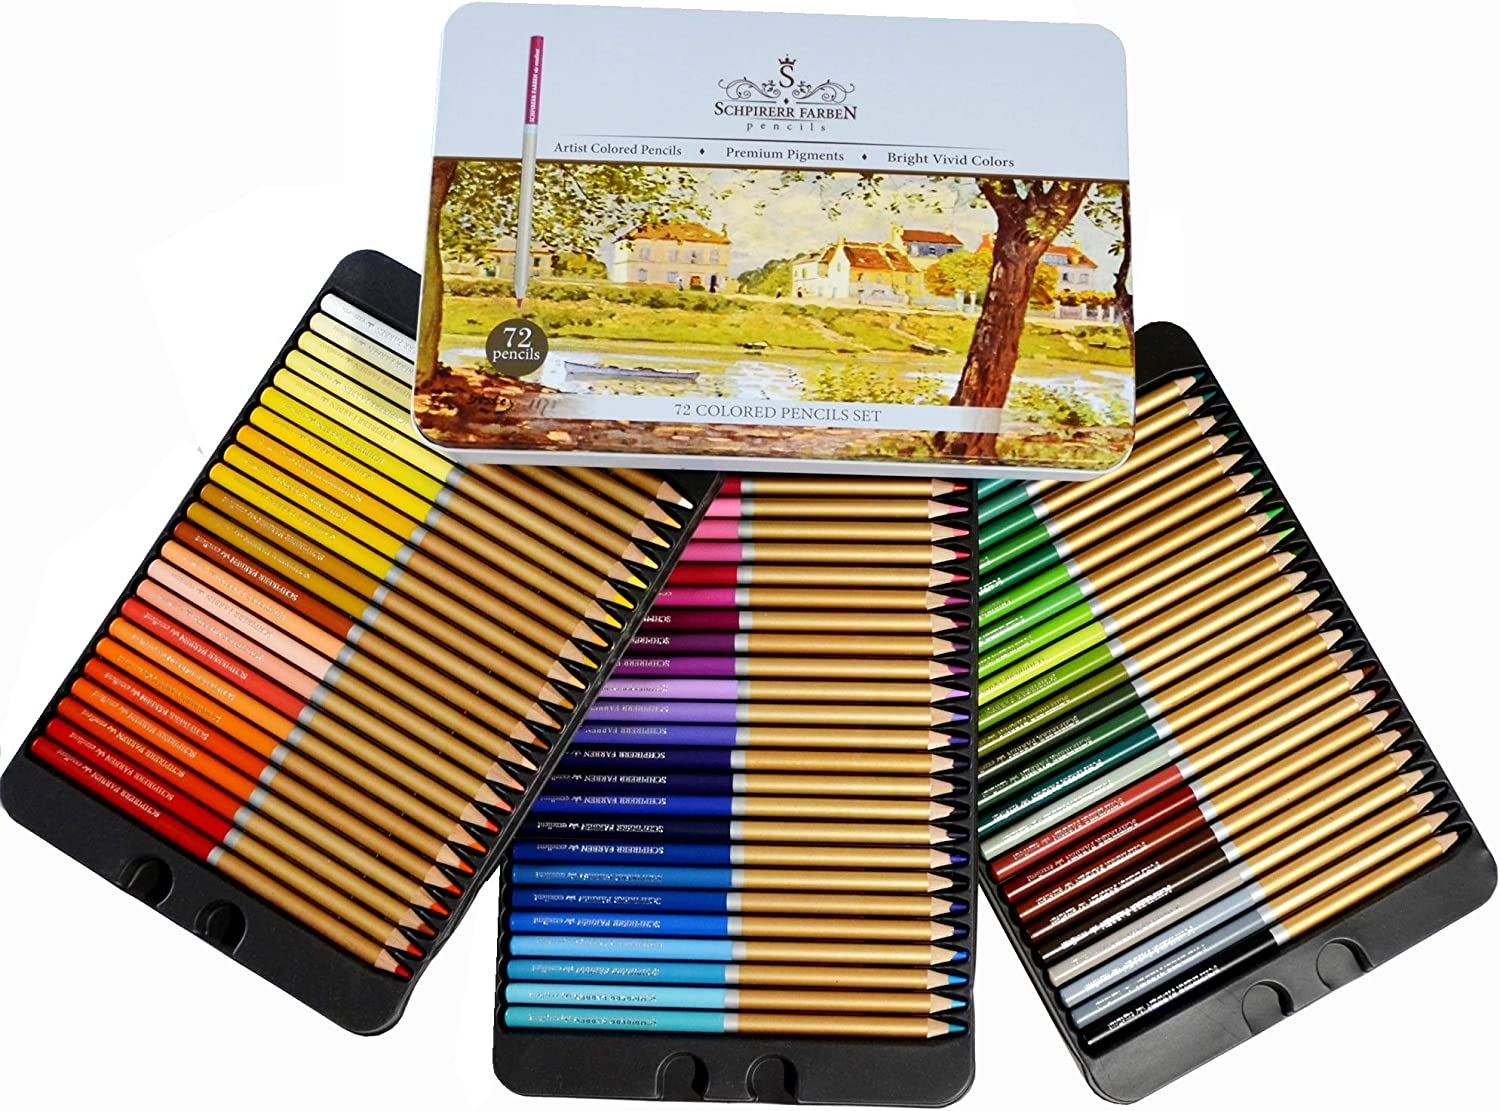 Professional Premium numbered 72 Colored Pencils Set Schpirerr Farben – Oil Based Soft Core, Ideal For Adults